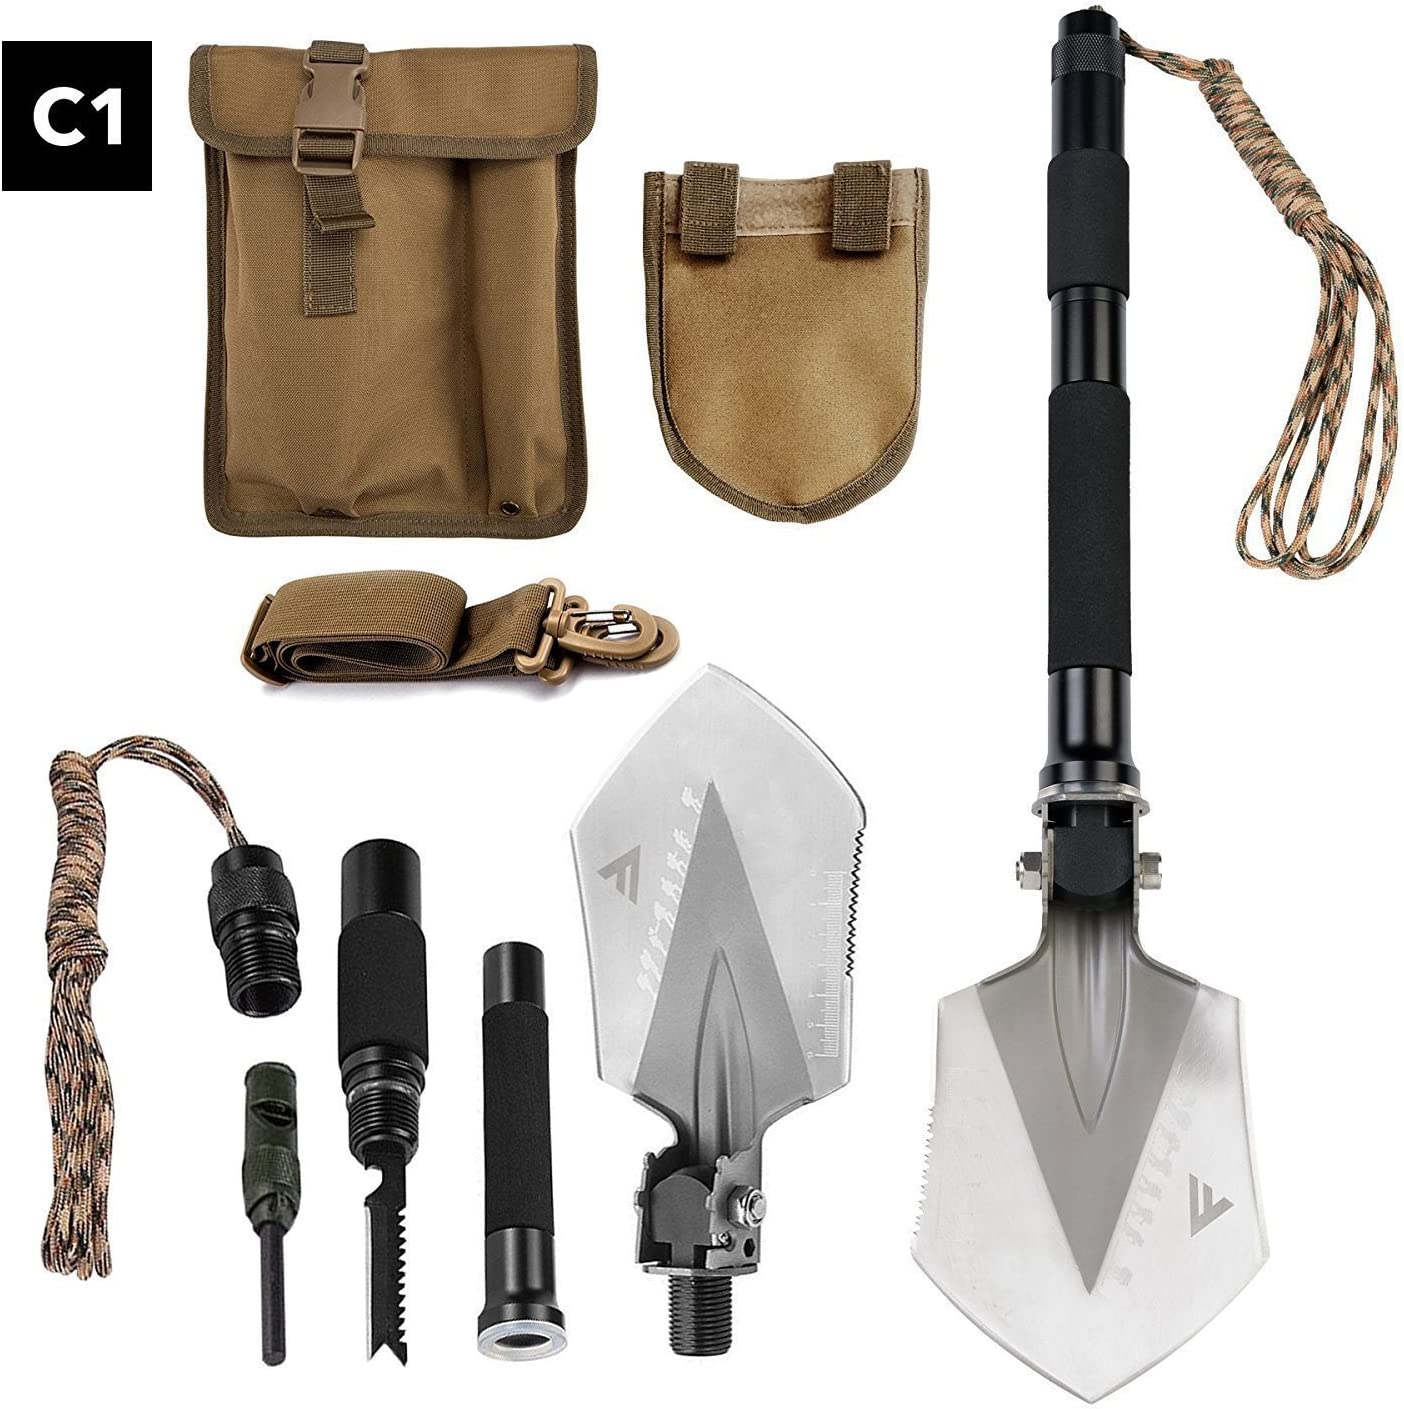 FiveJoy Military Folding Shovel Multitool C1 – Portable Foldable Survival Tool – Entrenching Backpack Equipment for Hiking Camping Emergency Car – Bushcraft Gear Shovels and Accessories Tools Kit